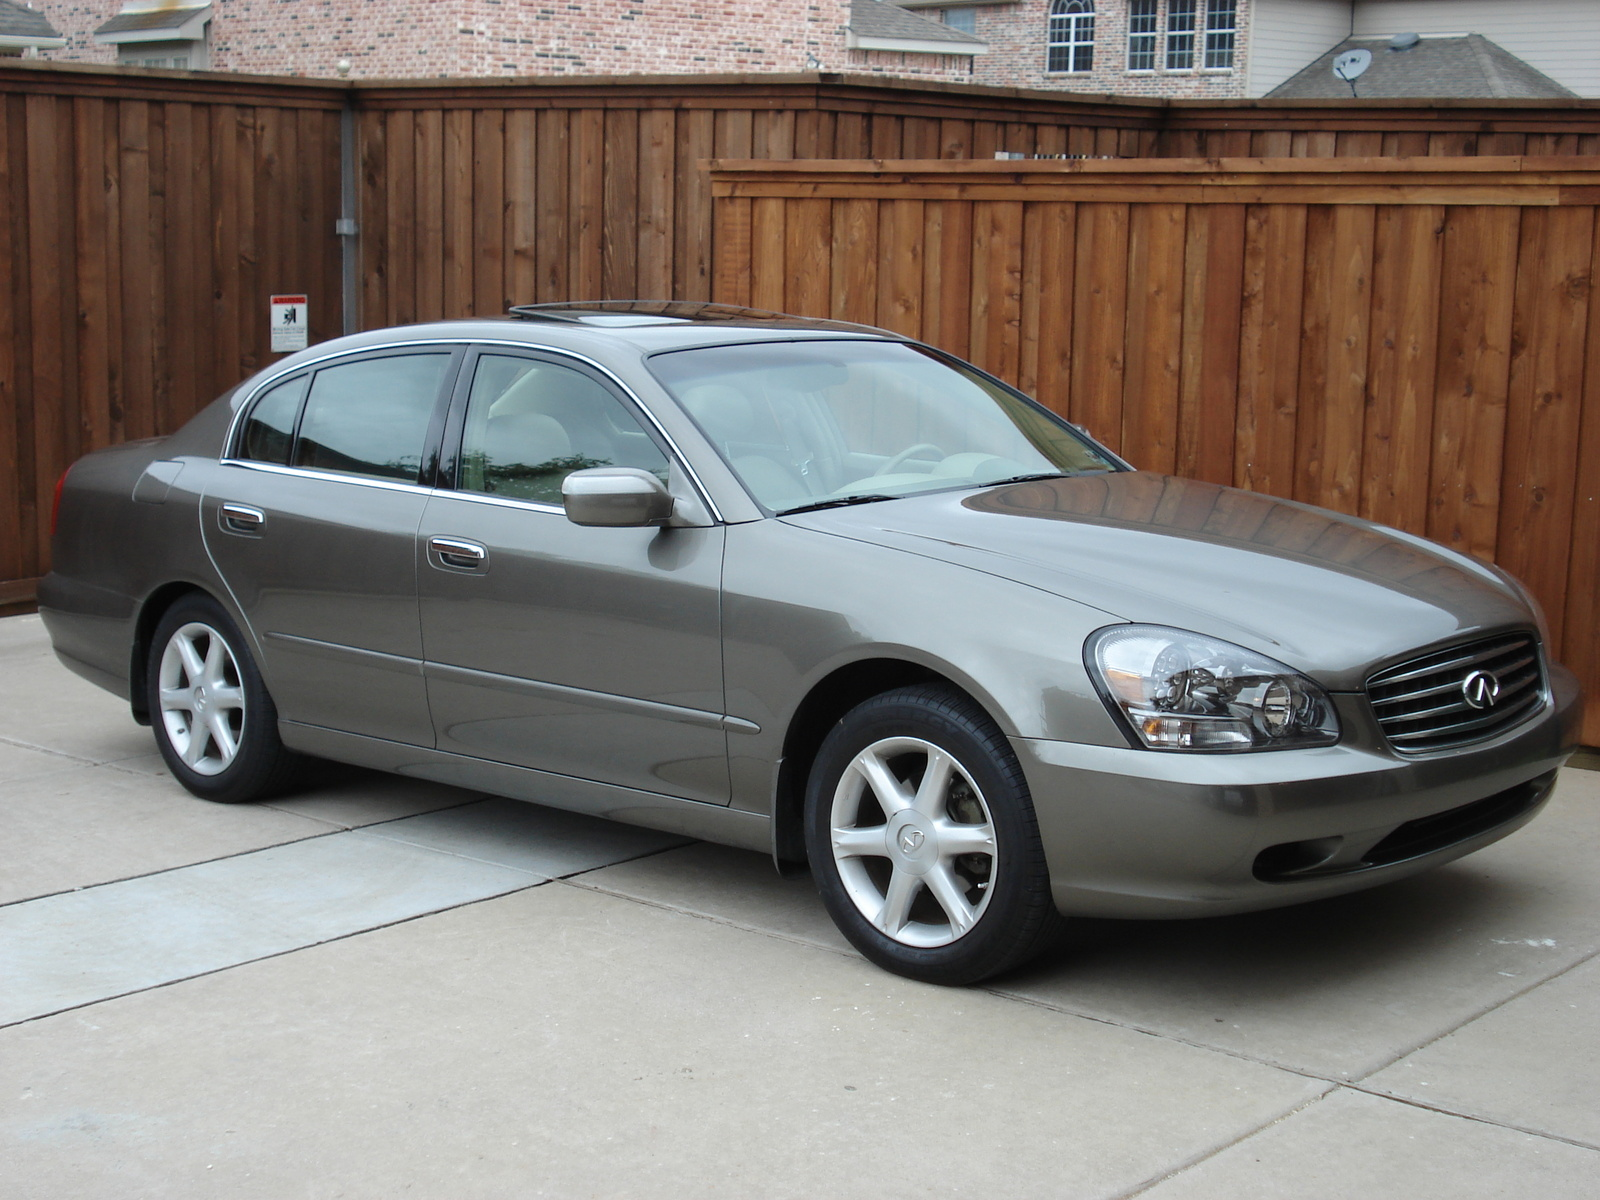 2004 Infiniti Q45 4 Dr STD Sedan picture